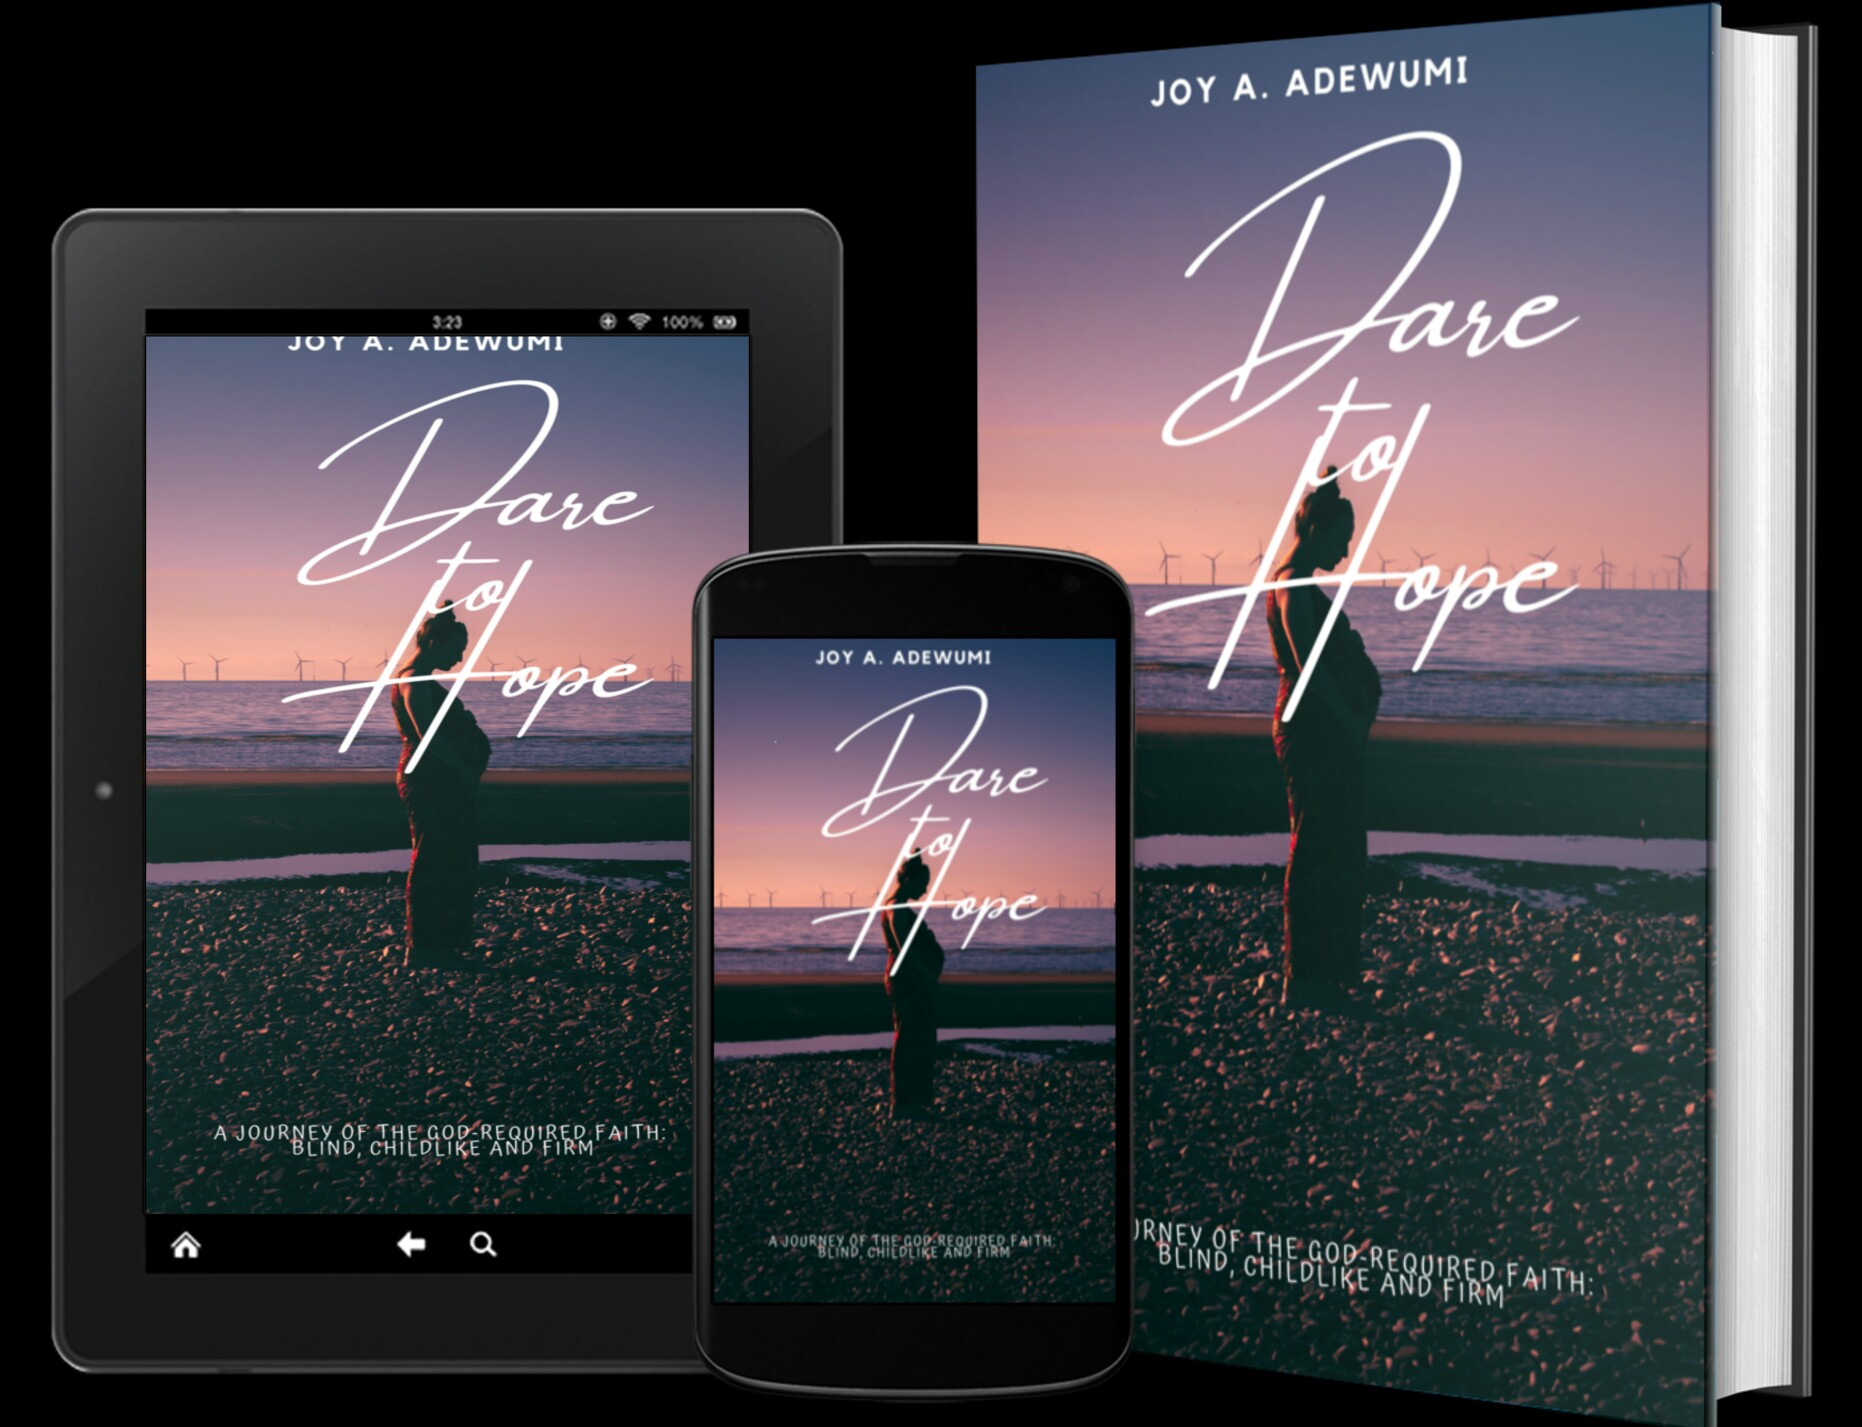 Download Dare to Hope by Joy A. Adewumi